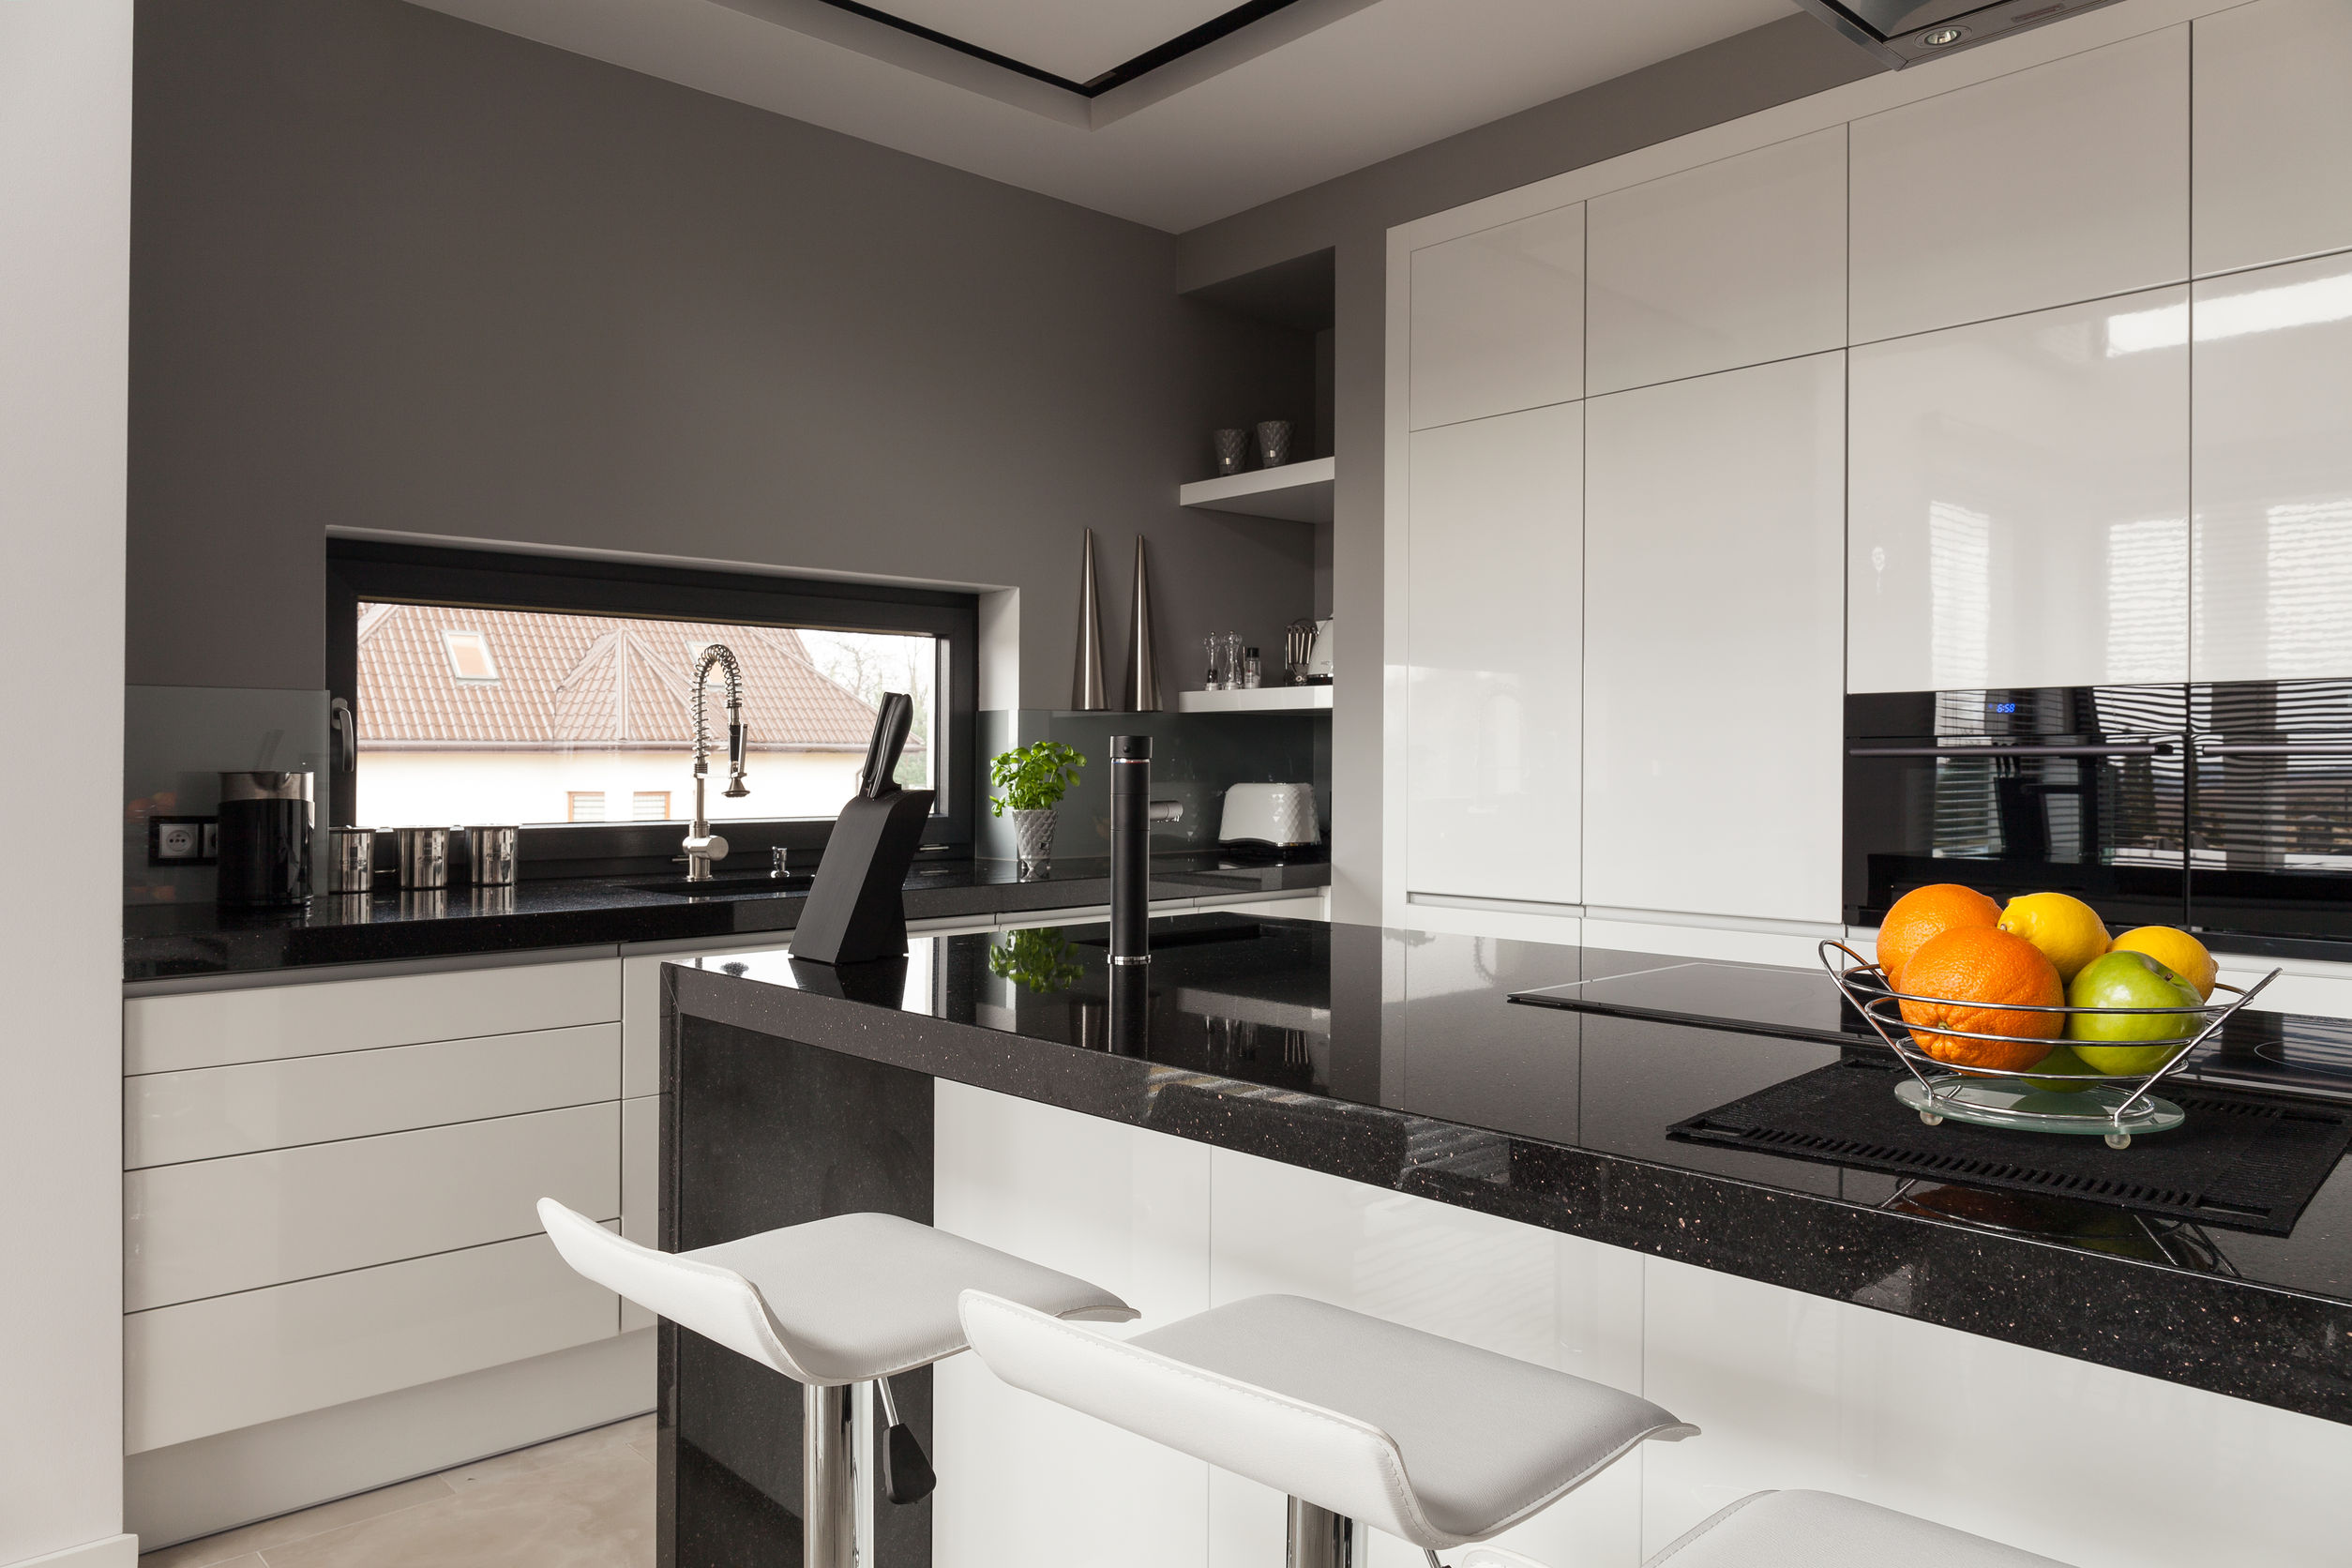 38554716 - picture of black and white kitchen design